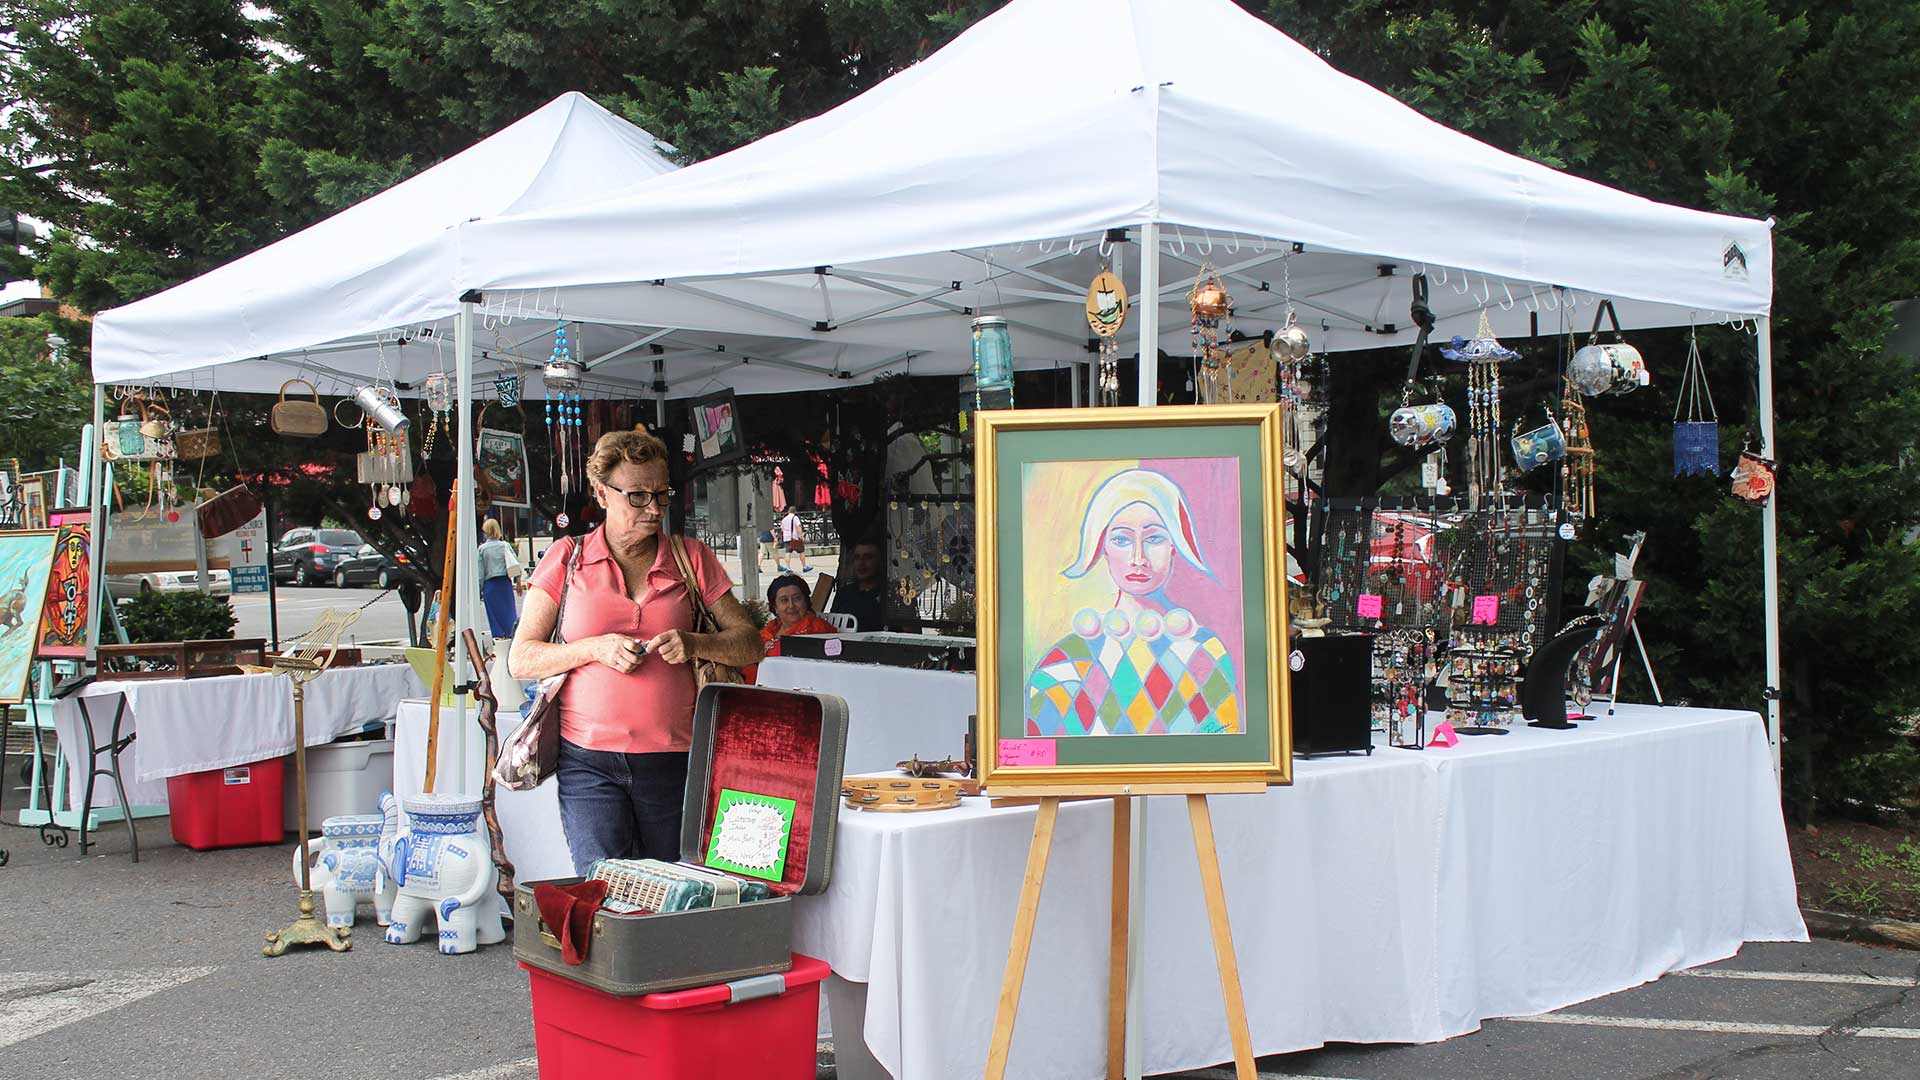 Uptown-Art-Festival-Attendee-Makes-a-Beeline-for-the-Wind-Chimes.jpg